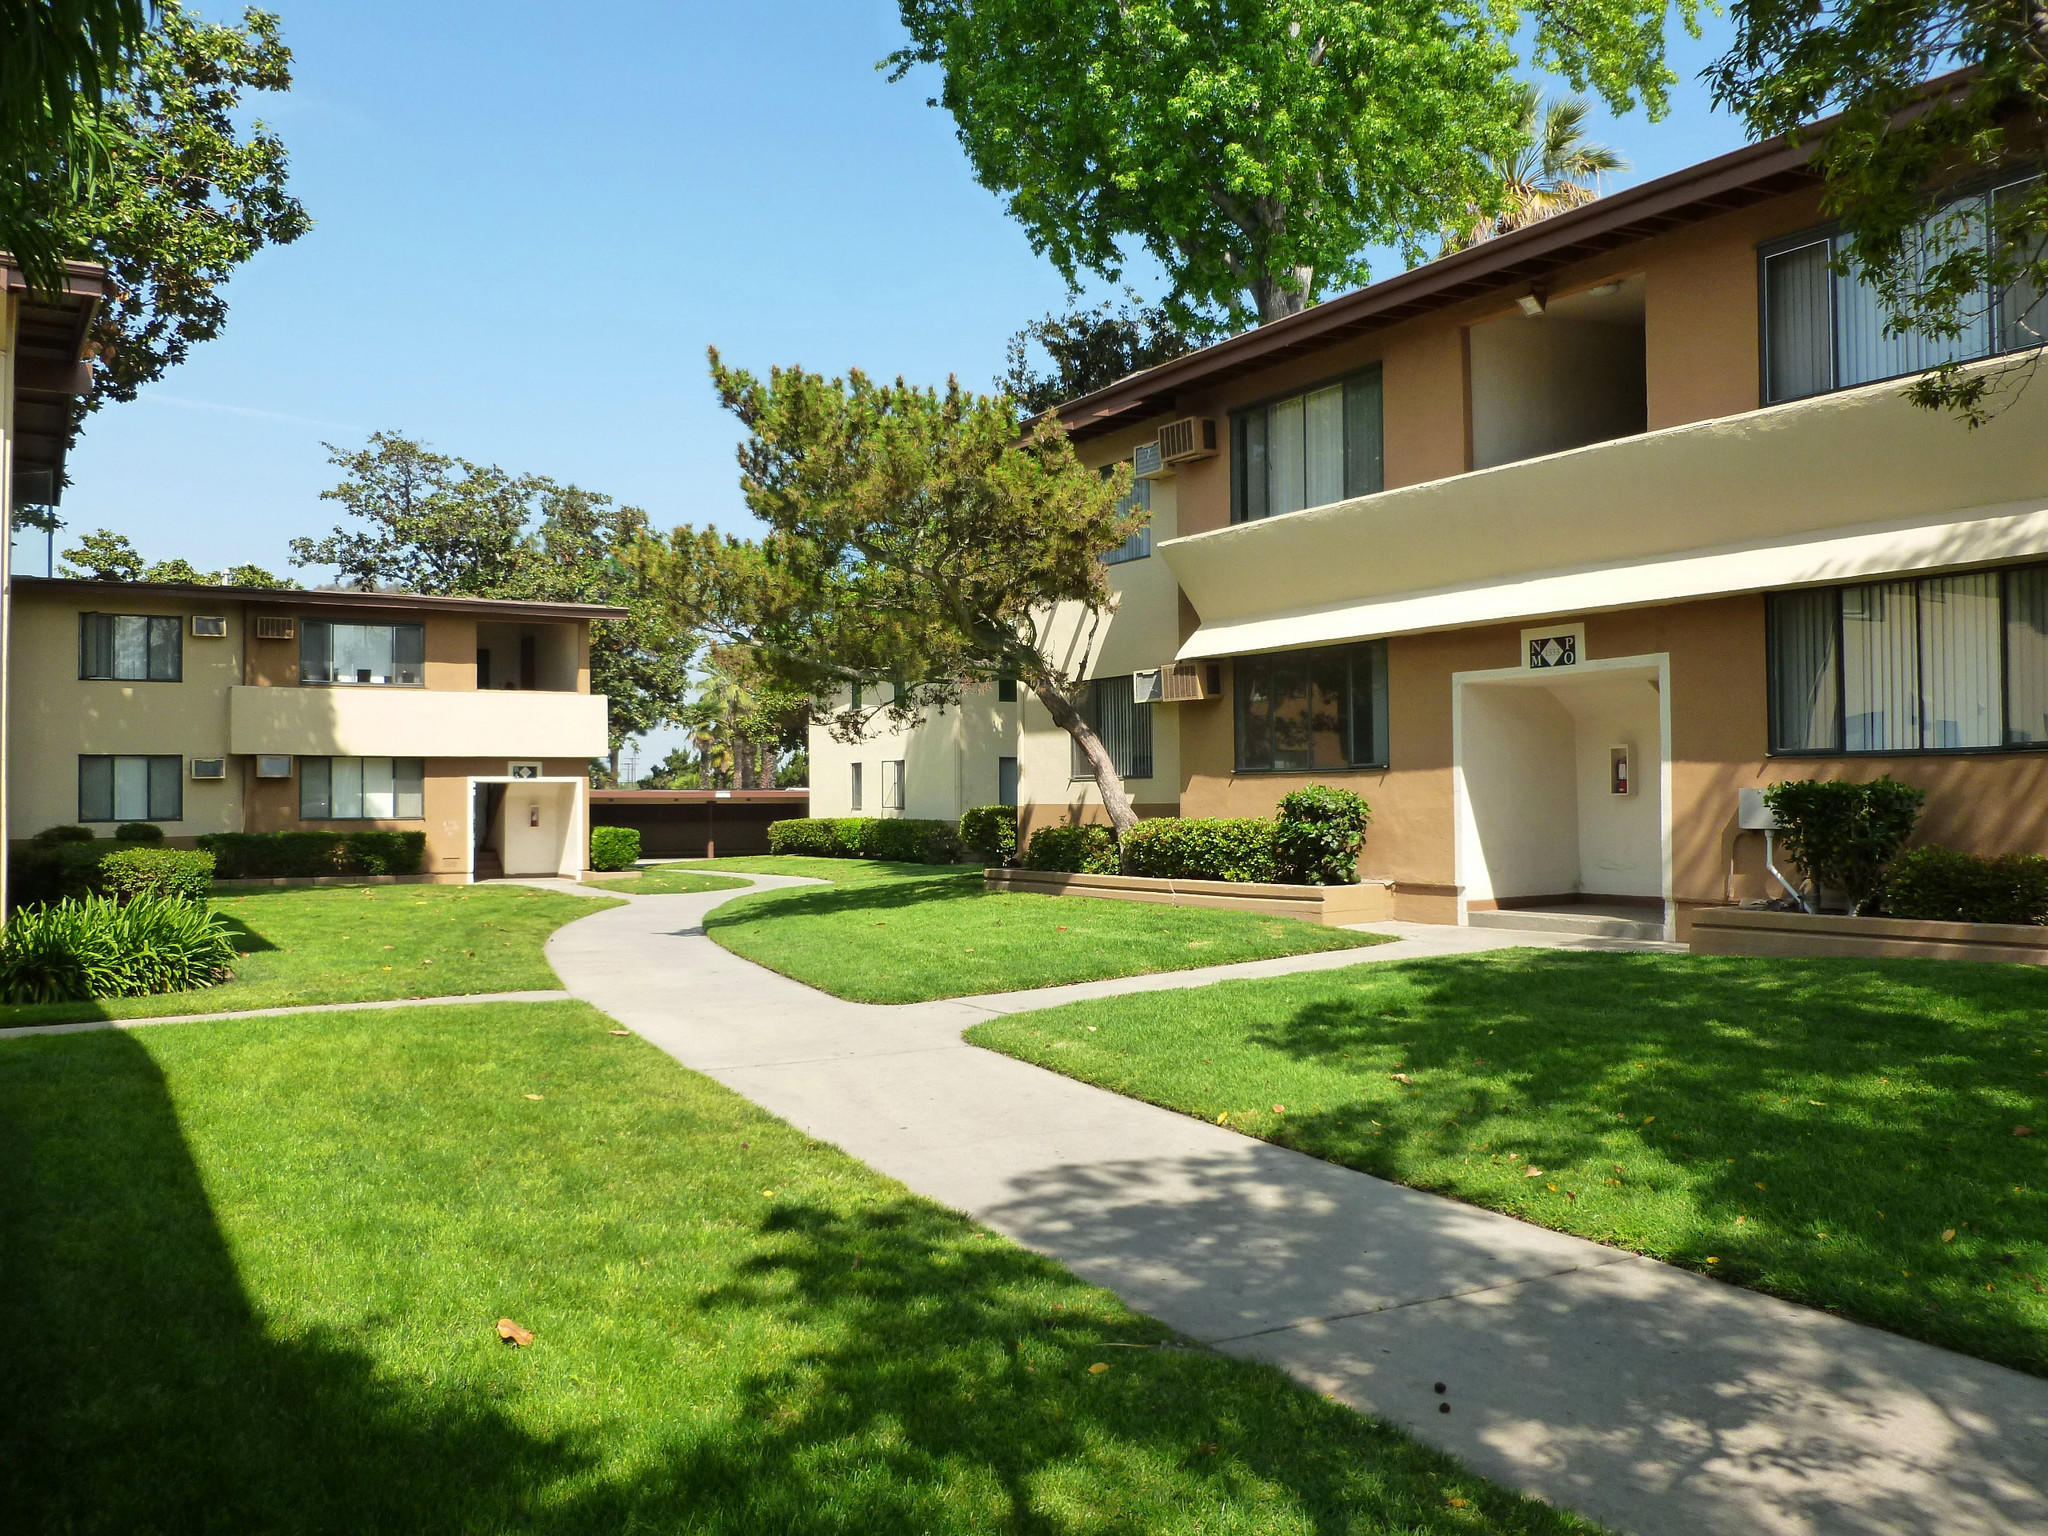 lehman bros. sells west covina apartment complex for $29.4 million